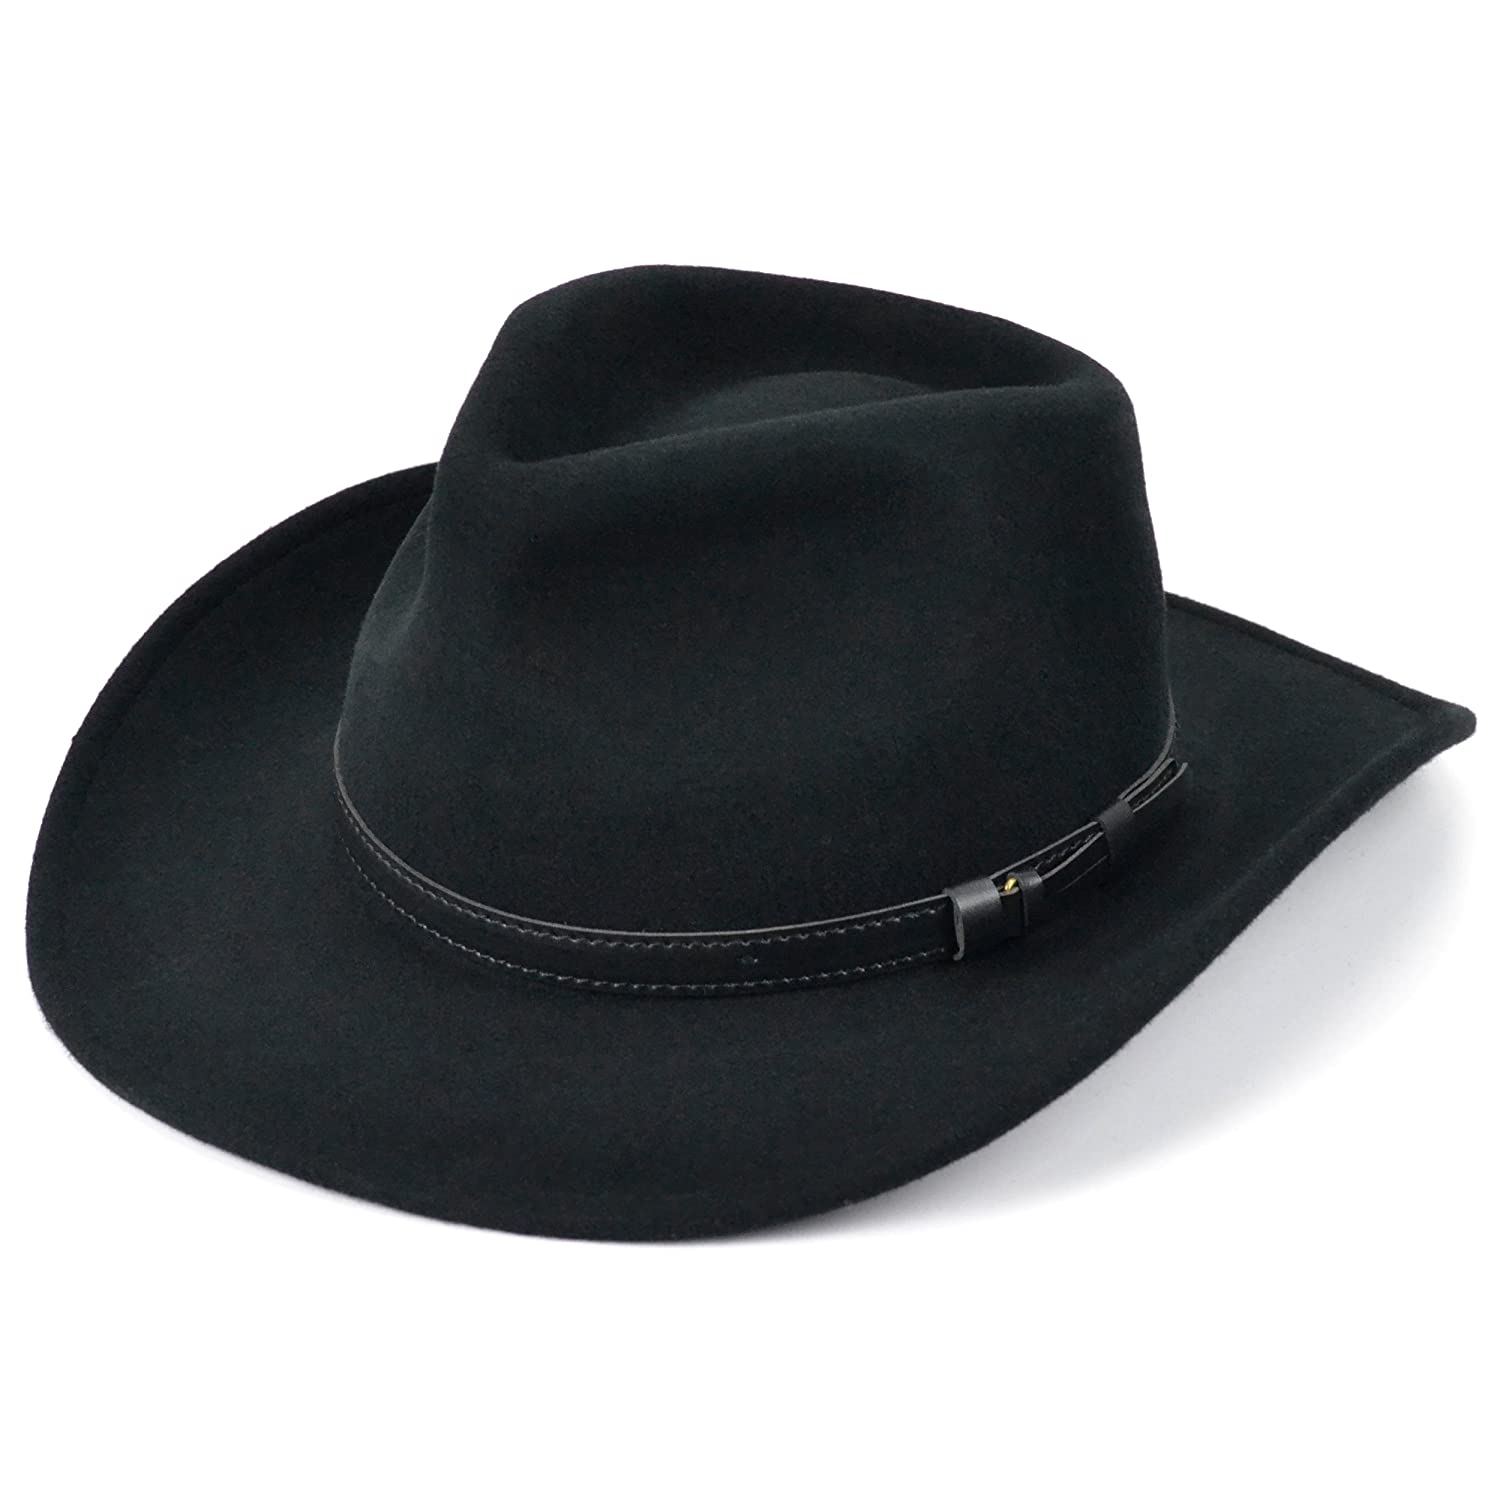 Fedora wool felt hat black waterproof with faux leather band